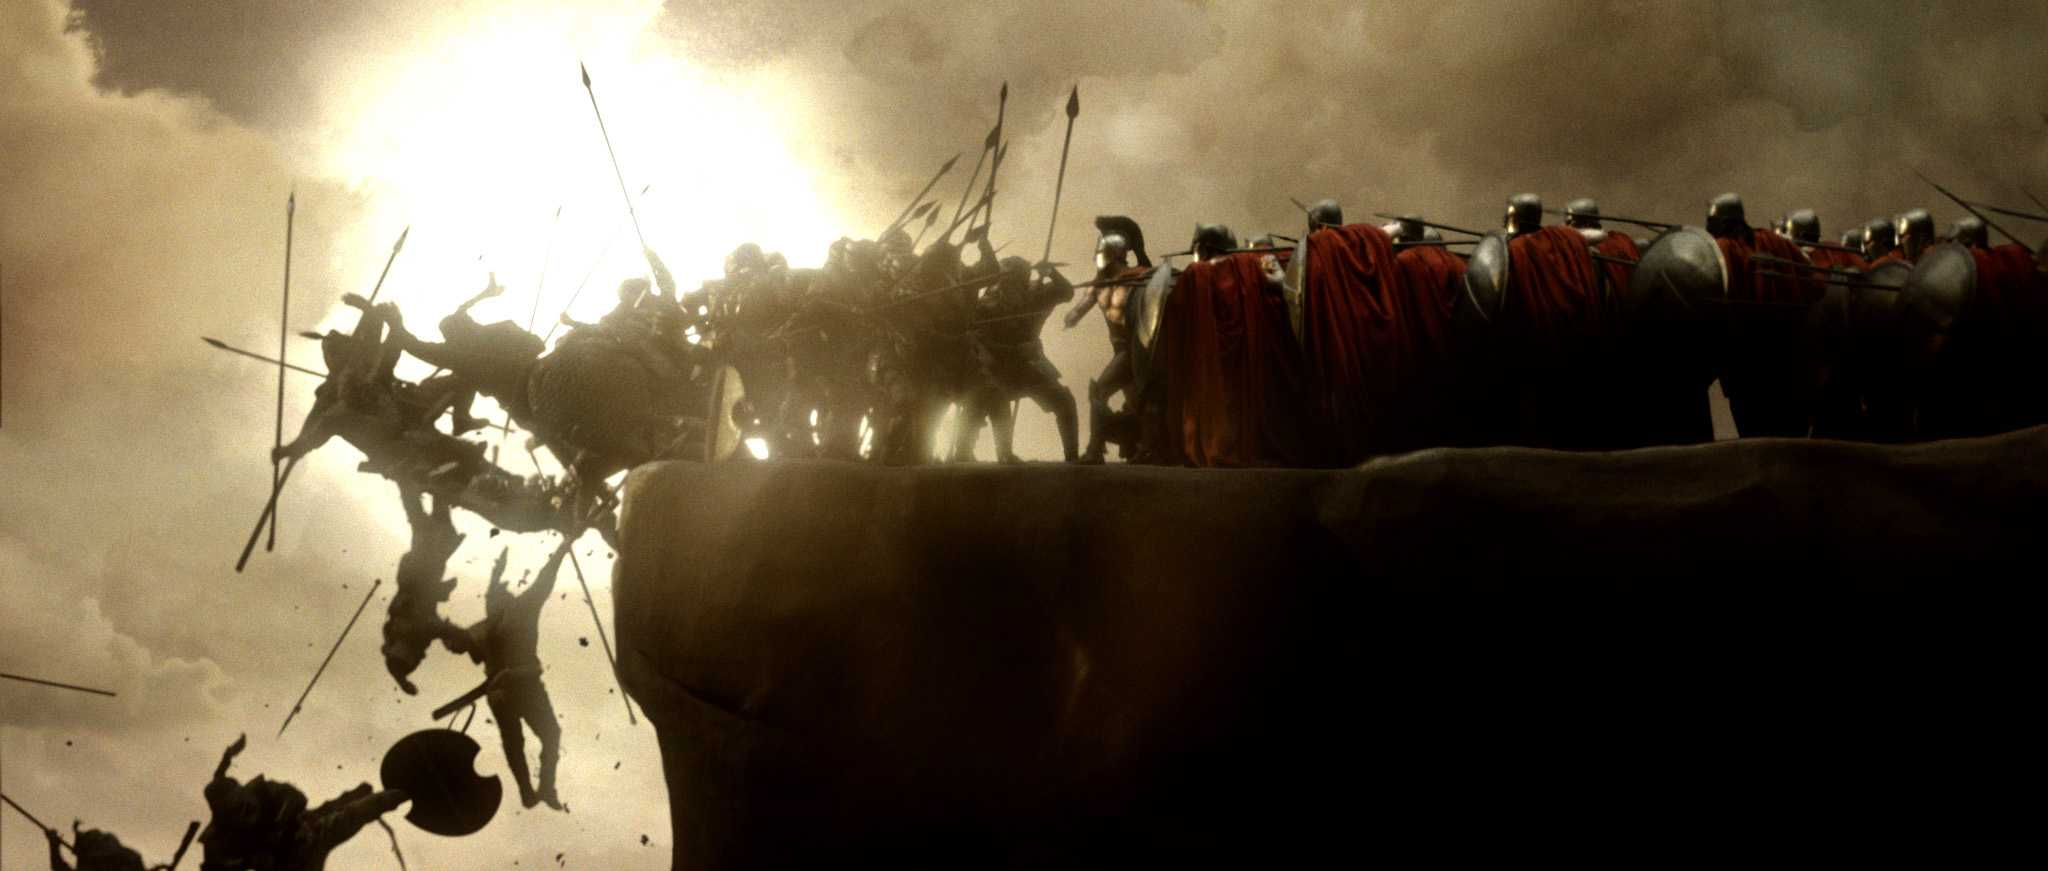 film critique on the 300 spartans essay This movie made me really see what went on the  below is an essay on the  300 spartans from anti essays, your source for research papers,.